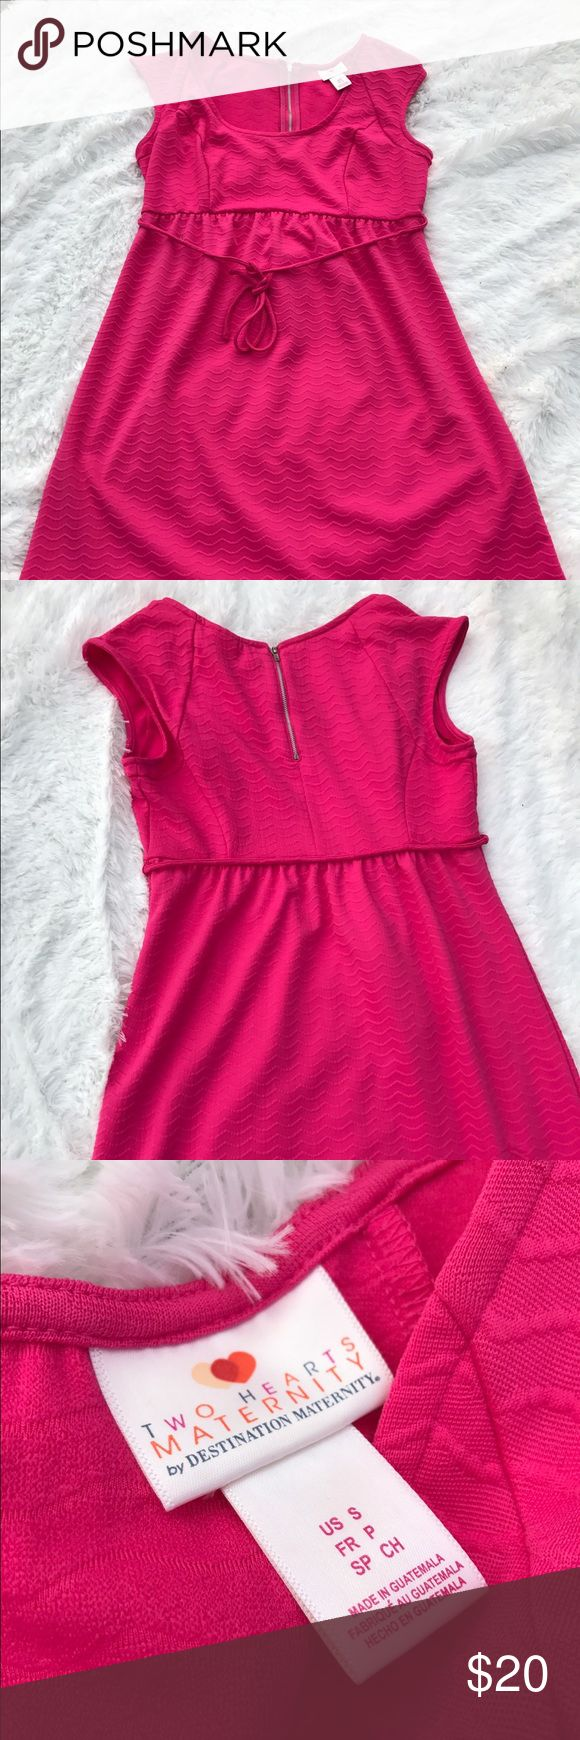 Two Hearts Maternity Dress Pink maternity dress with belt and silver zipper on the back. Can be worn with heels or sandals Dresses Midi